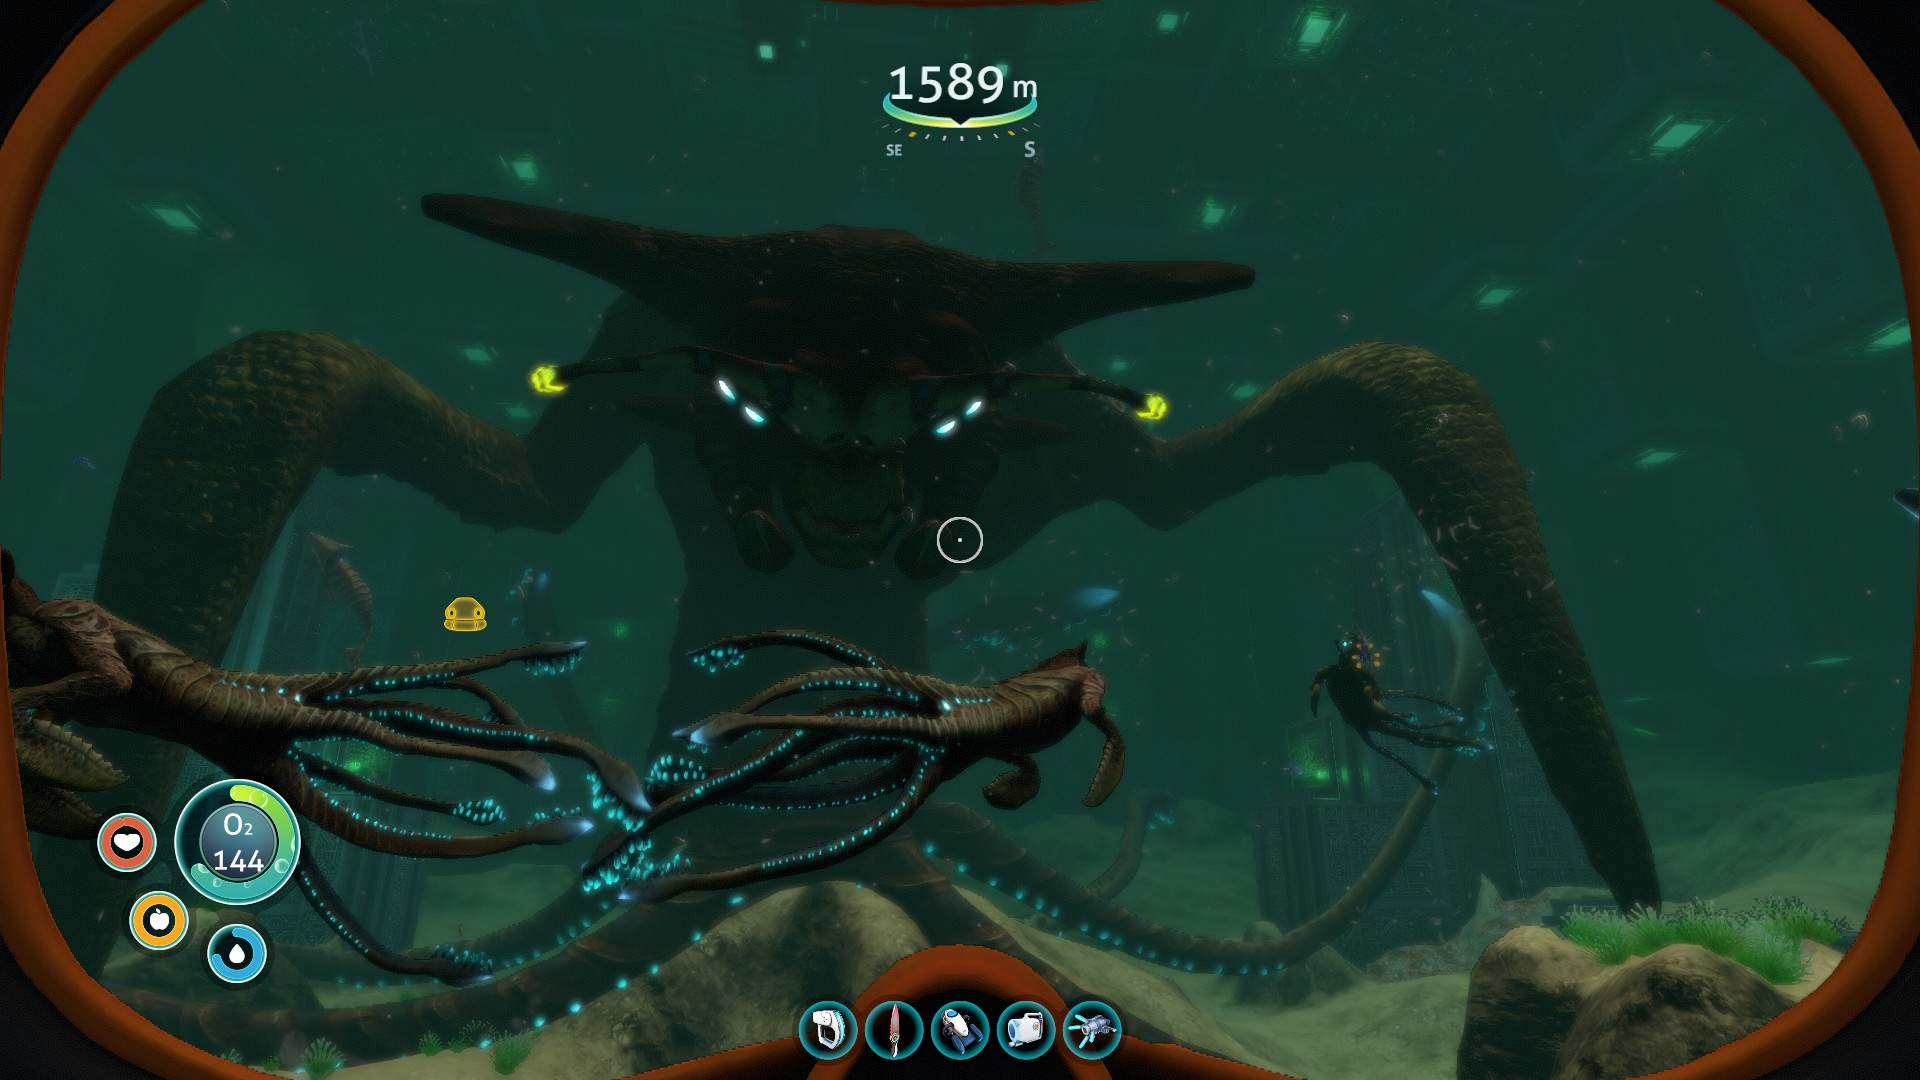 Subnautica Deep Sea Exploration Survival All Gamers With Jobs The zone is characterized by moderate danger levels. subnautica deep sea exploration